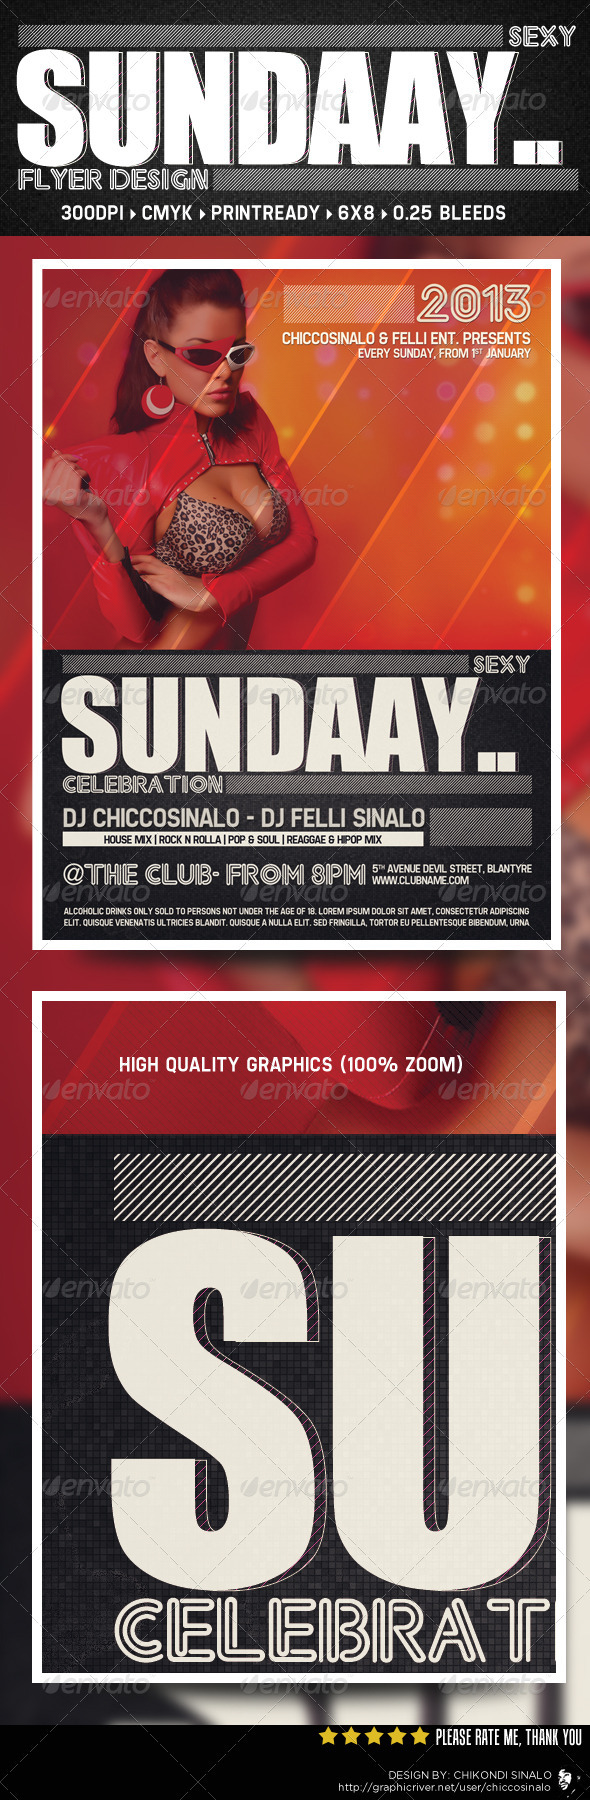 Sexy Sunday Flyer Template - Clubs & Parties Events